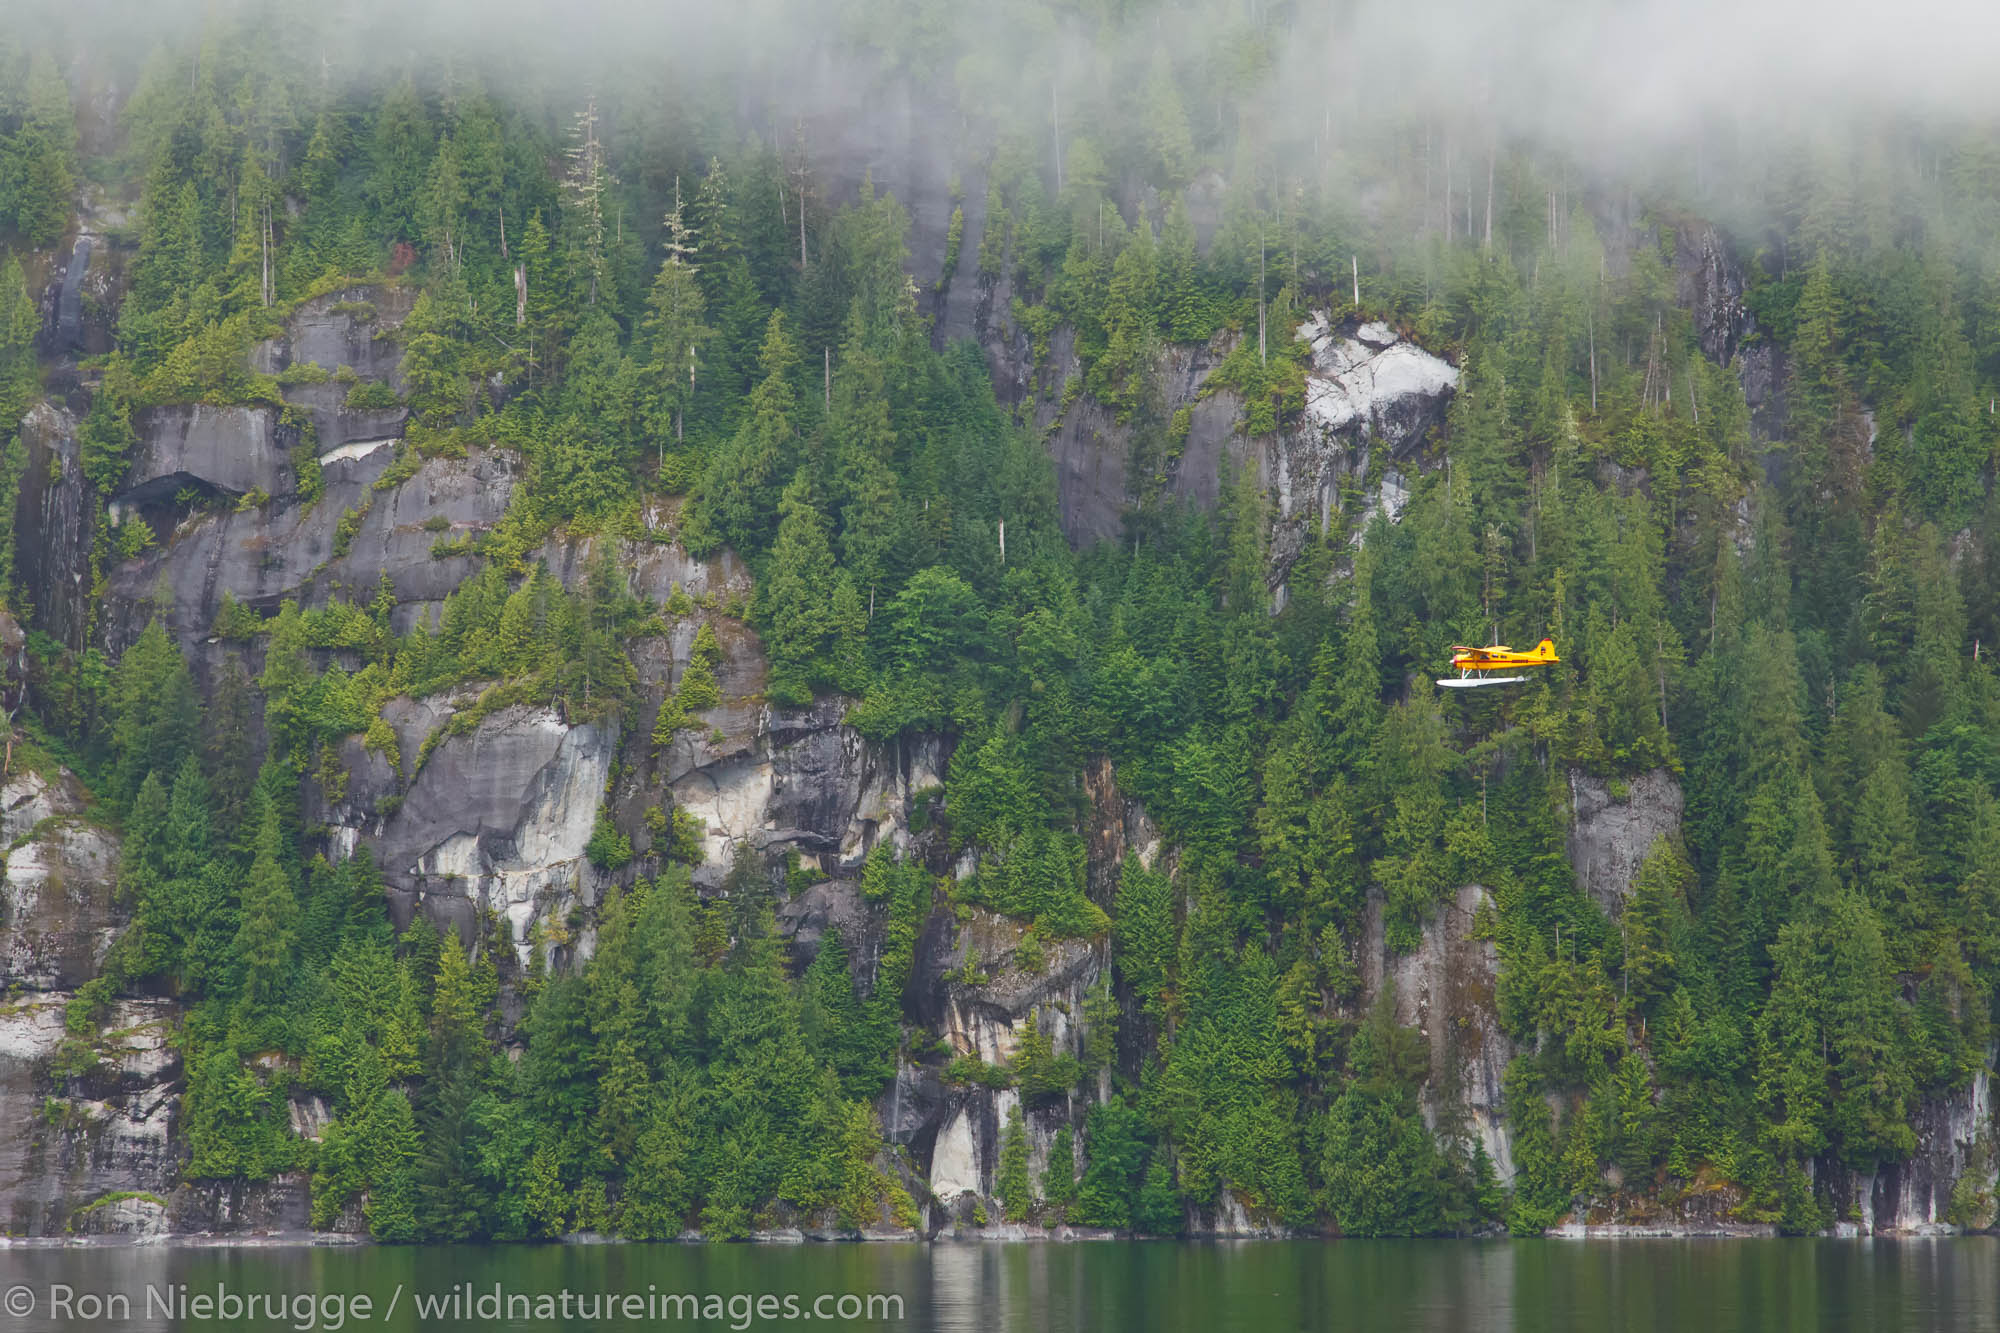 Airplane in Misty Fiords National Monument, Ketchikan, Alaska.